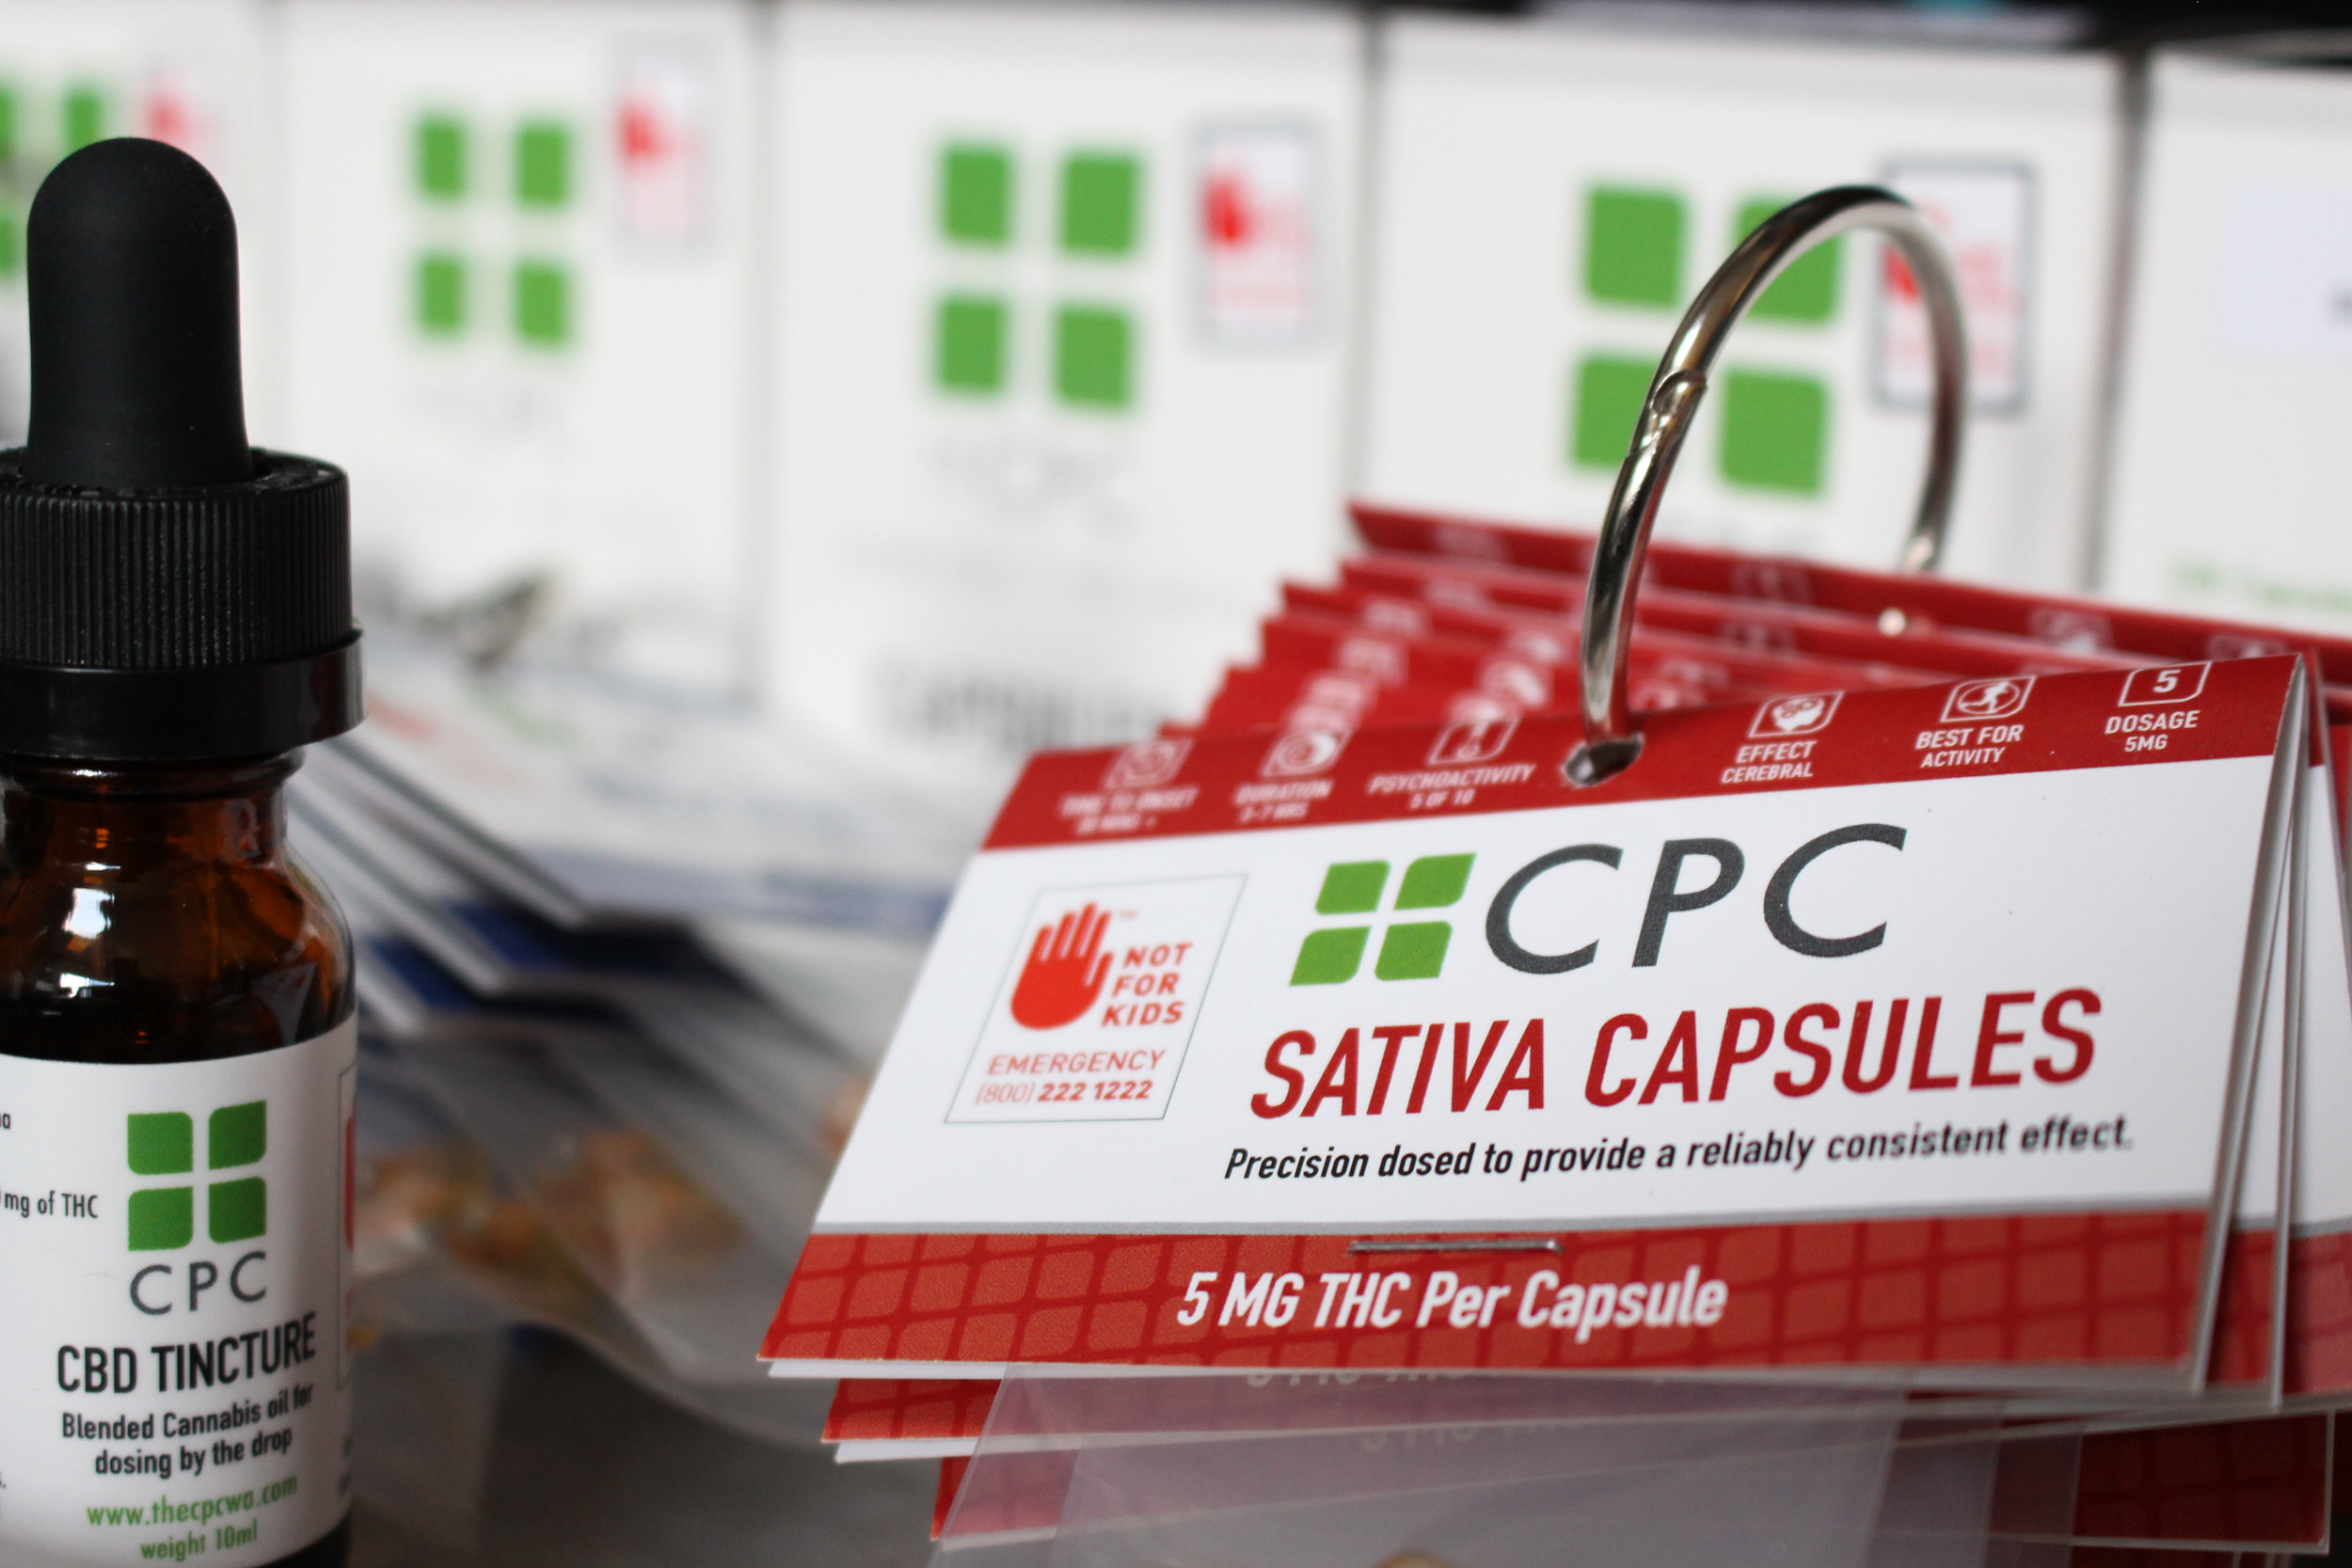 CBD Tincture and Sativa Capsules Cannabis packaging.jpg